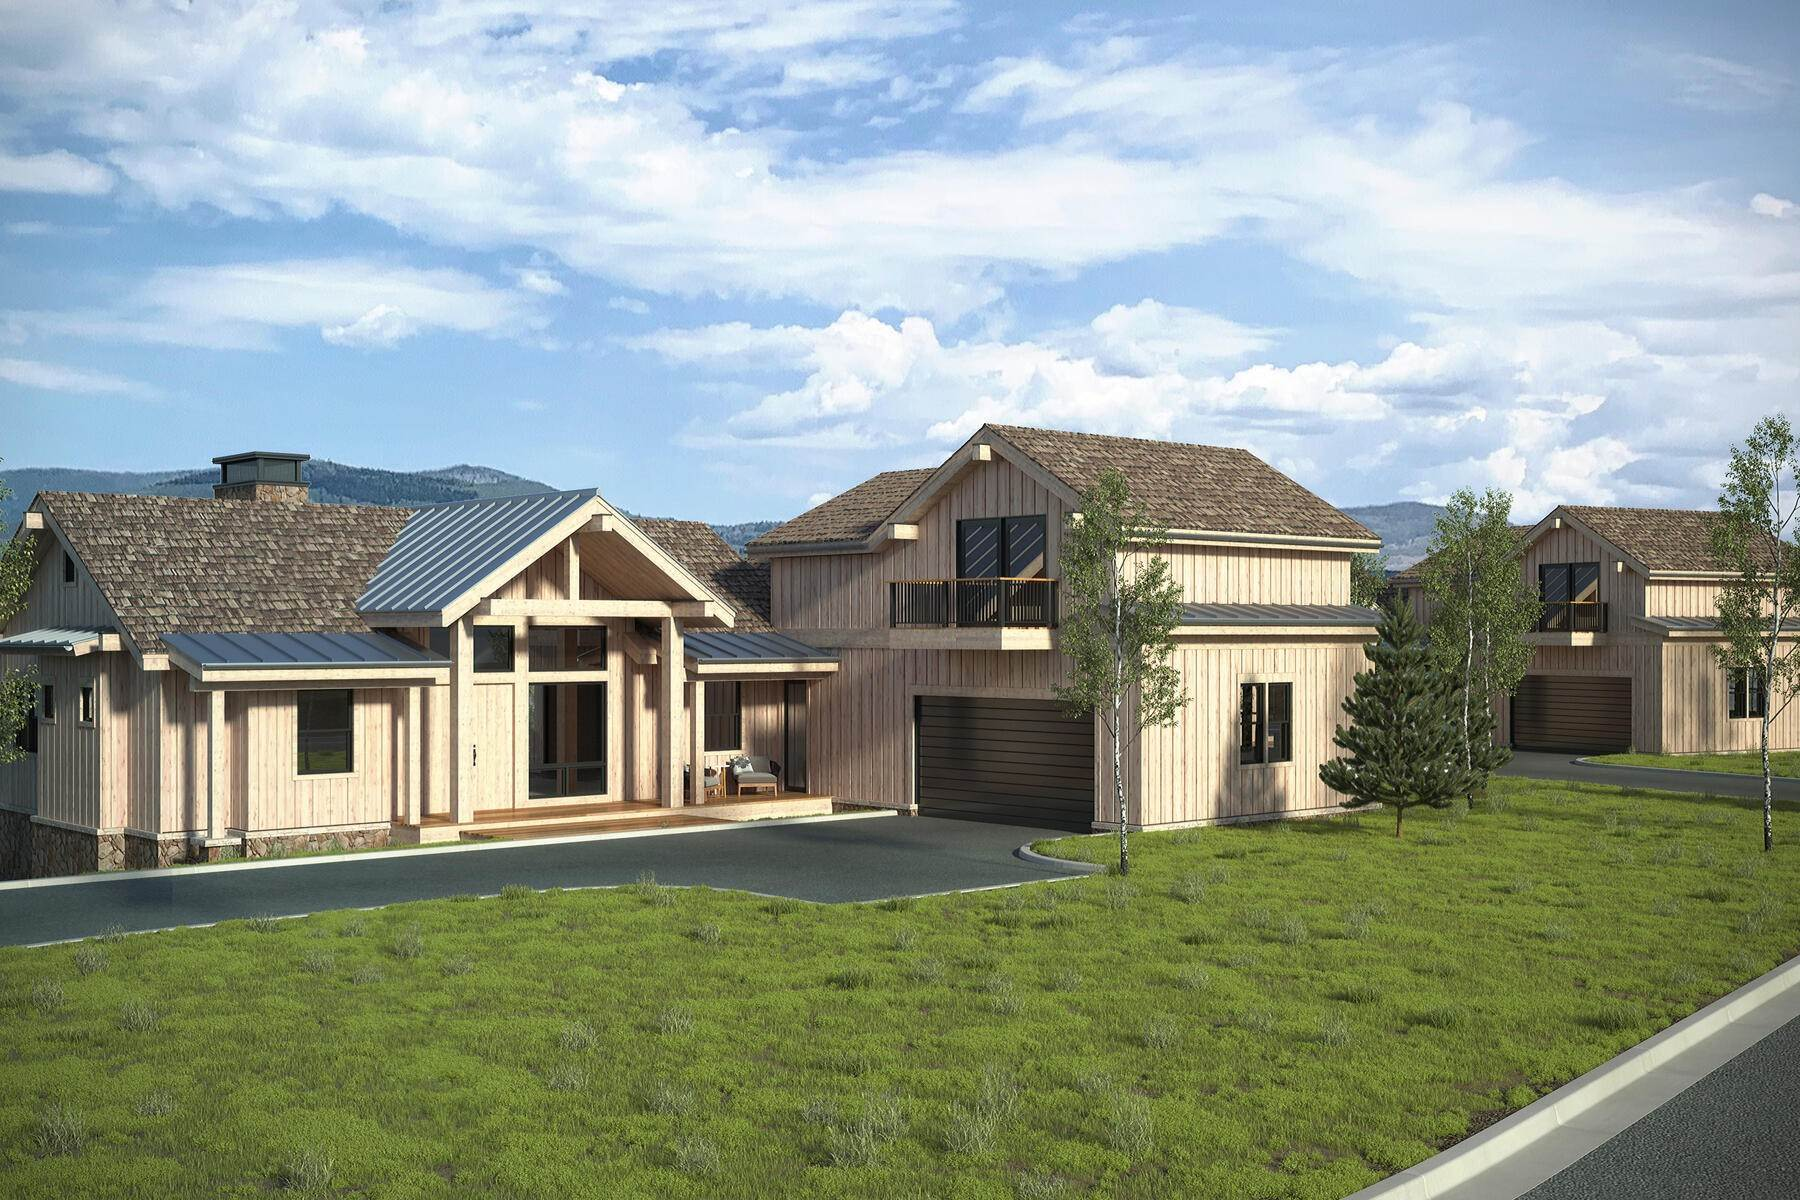 fractional ownership prop for Sale at 1/8 Fractional Ownership Opportunity In Brand New Kingfisher Cabin 7559 E Stardust Court #318D, 5.4 Heber City, Utah 84032 United States